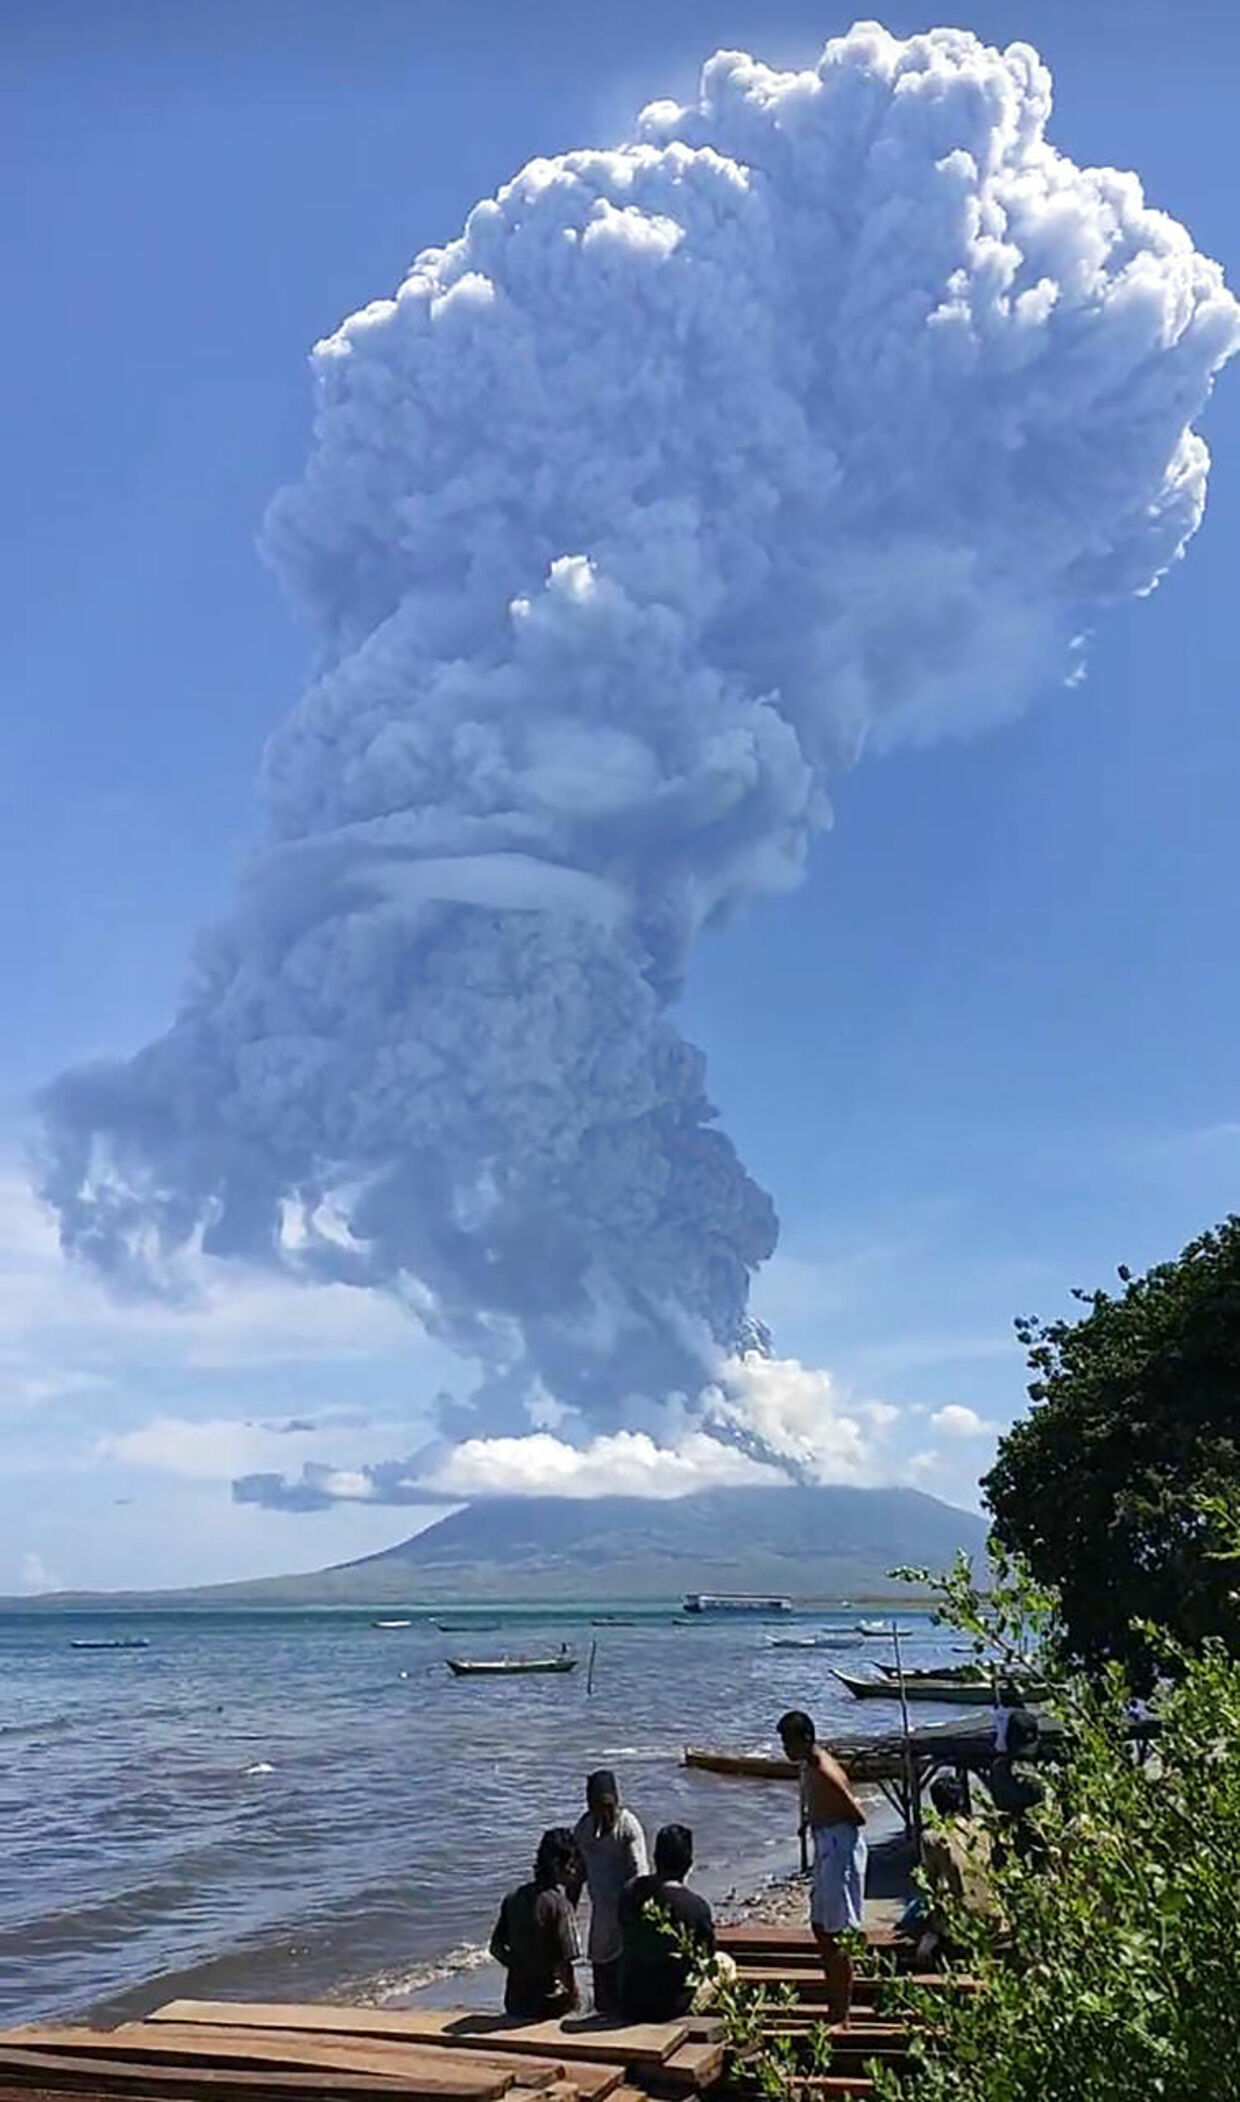 Residents gather to watch as Mount Ili Lewotolok spews ash during a volcanic eruption in Lembata, East Nusa Tenggara on November 29, 2020. (Photo by JOY CHRISTIAN / AFP)